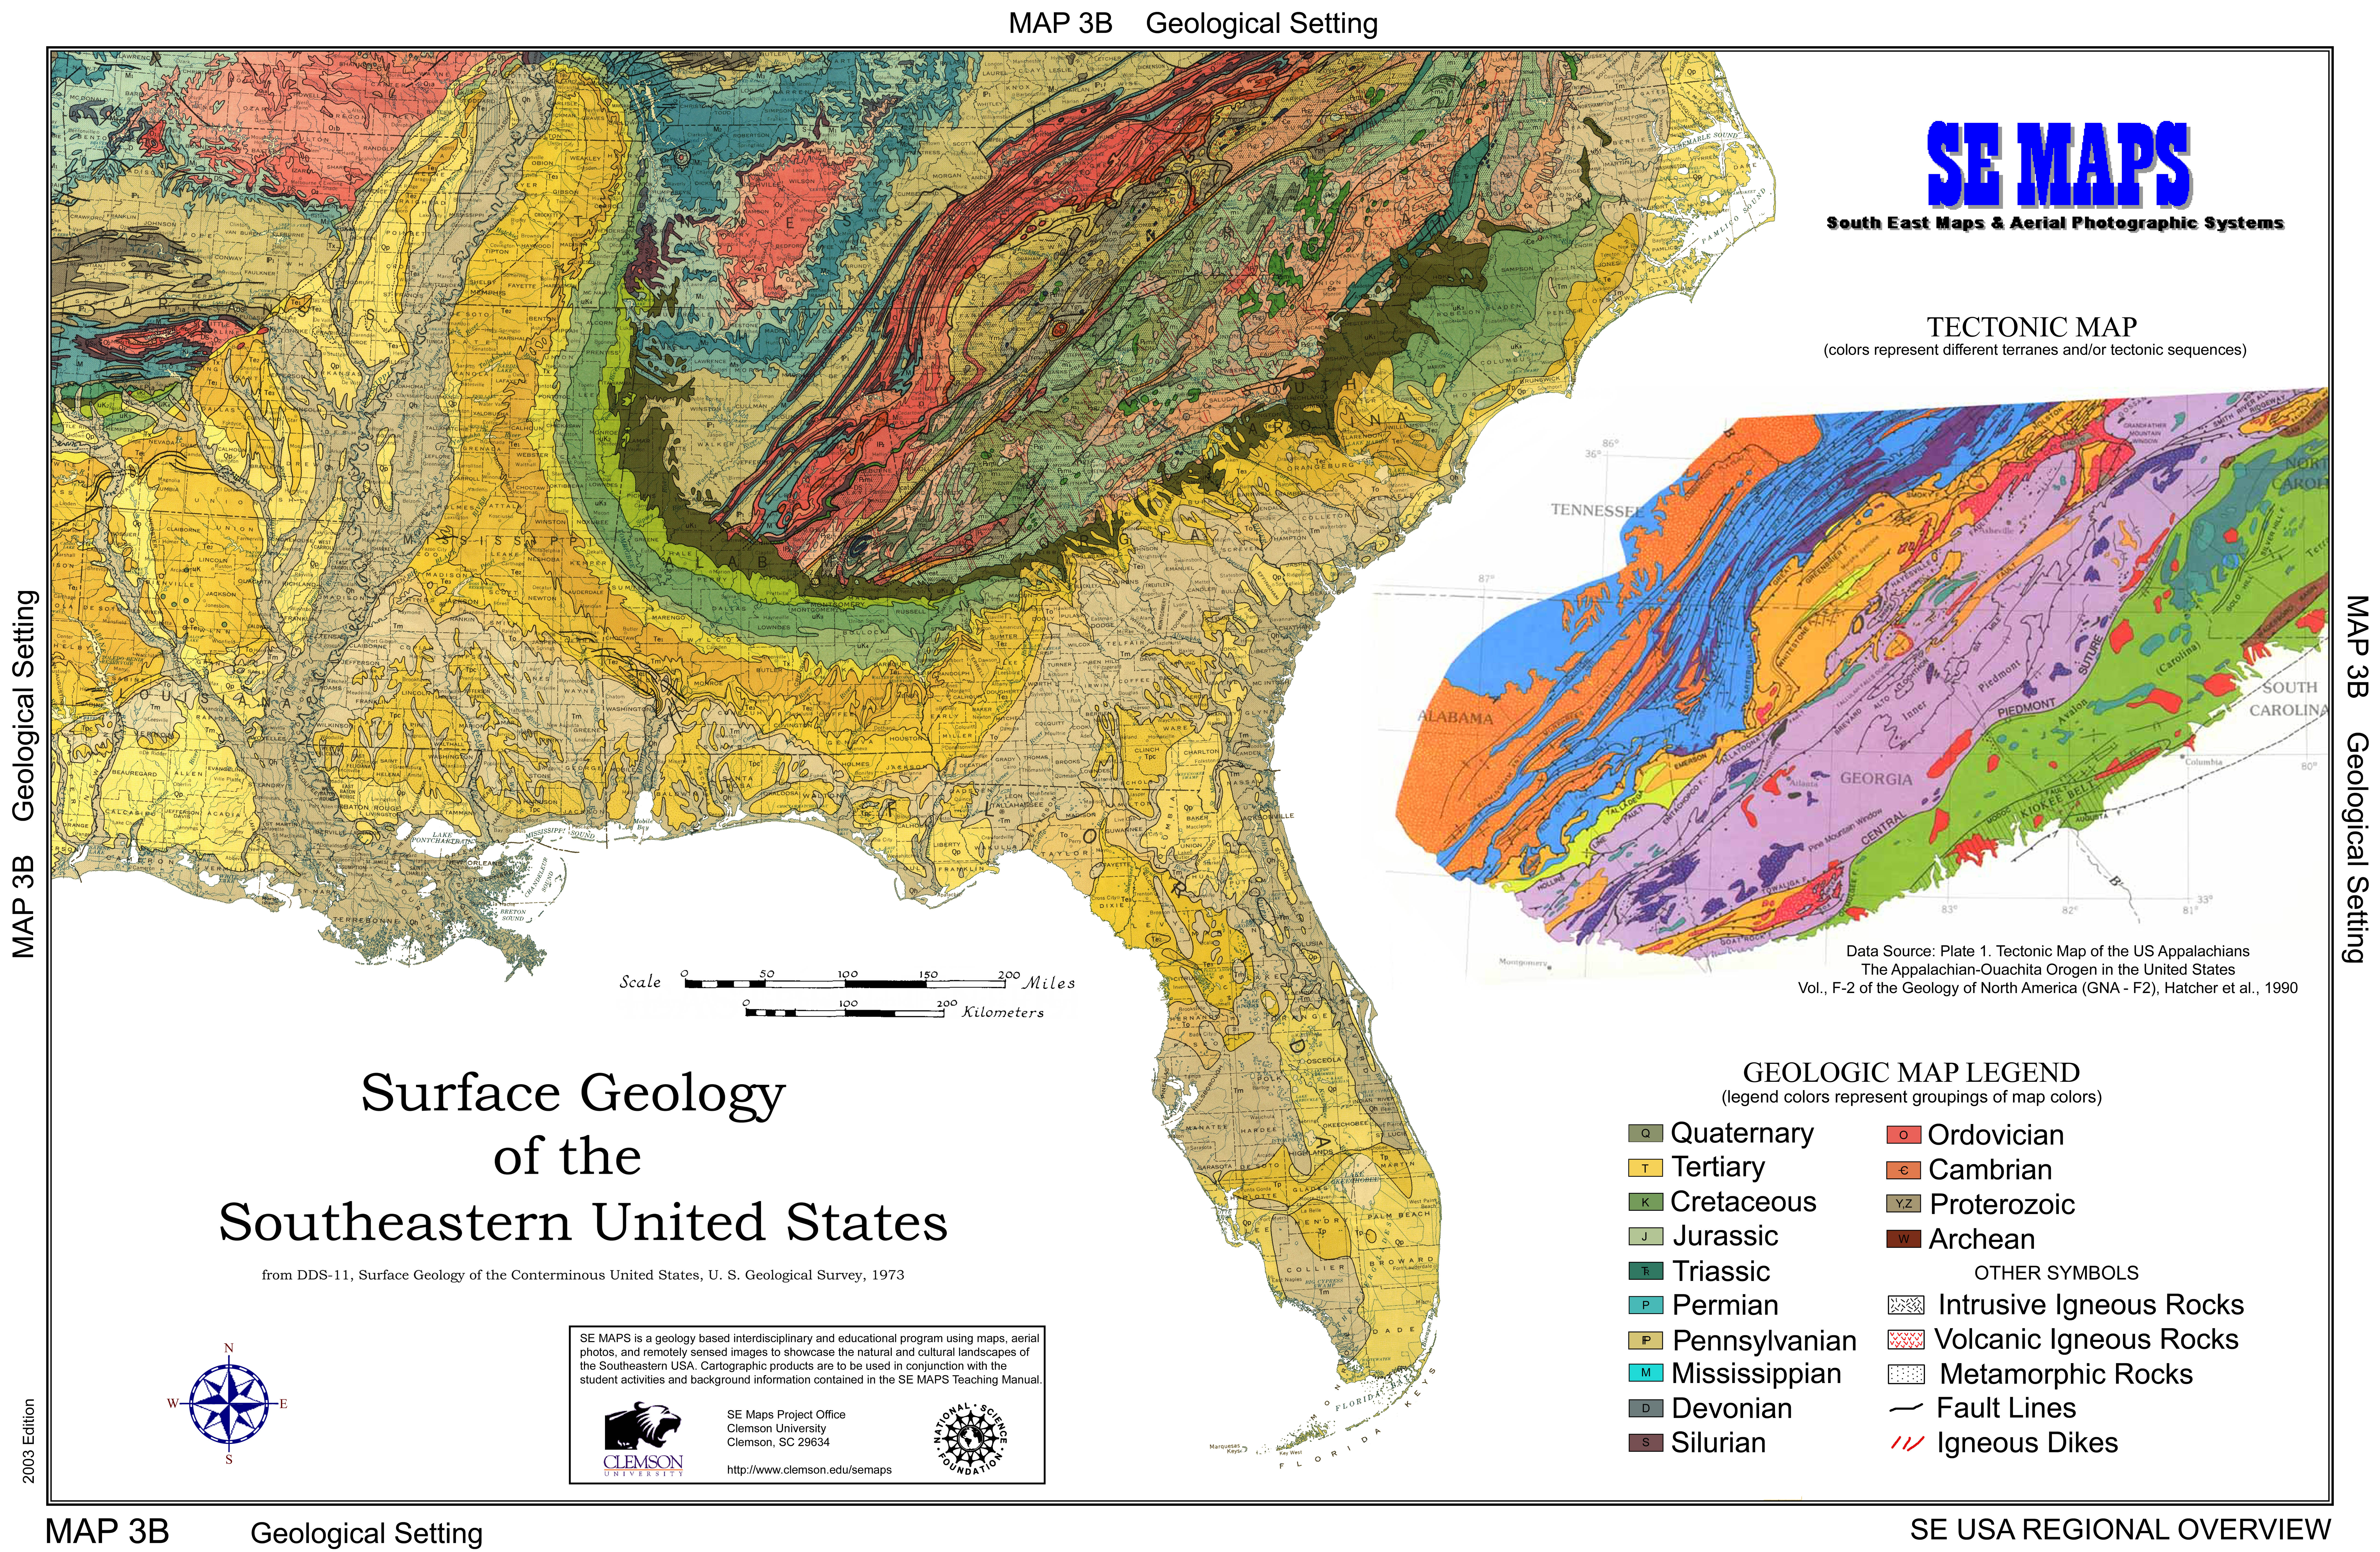 SE MAPS Regional Maps Home Images Of Southeast Us Maps on map of florida, map of cuba, map of northeast us, deep south, new england, united states of america, map of east coast, mid-atlantic states, history of slavery in the united states, map of louisiana, eastern united states, bible belt, american civil war, southern united states, great migration, map of mississippi, map of united states, map of north carolina, map of georgia, map of southeastern us, confederate states of america, east coast of the united states, southeastern united states, great plains, map of eastern us, western united states, map of south usa, map of us military bases, southwestern united states, map of midwest, map of south carolina, map of arkansas, map of southern us, map of northwest us, northeastern united states, map of west central us, midwestern united states, map of us highways,